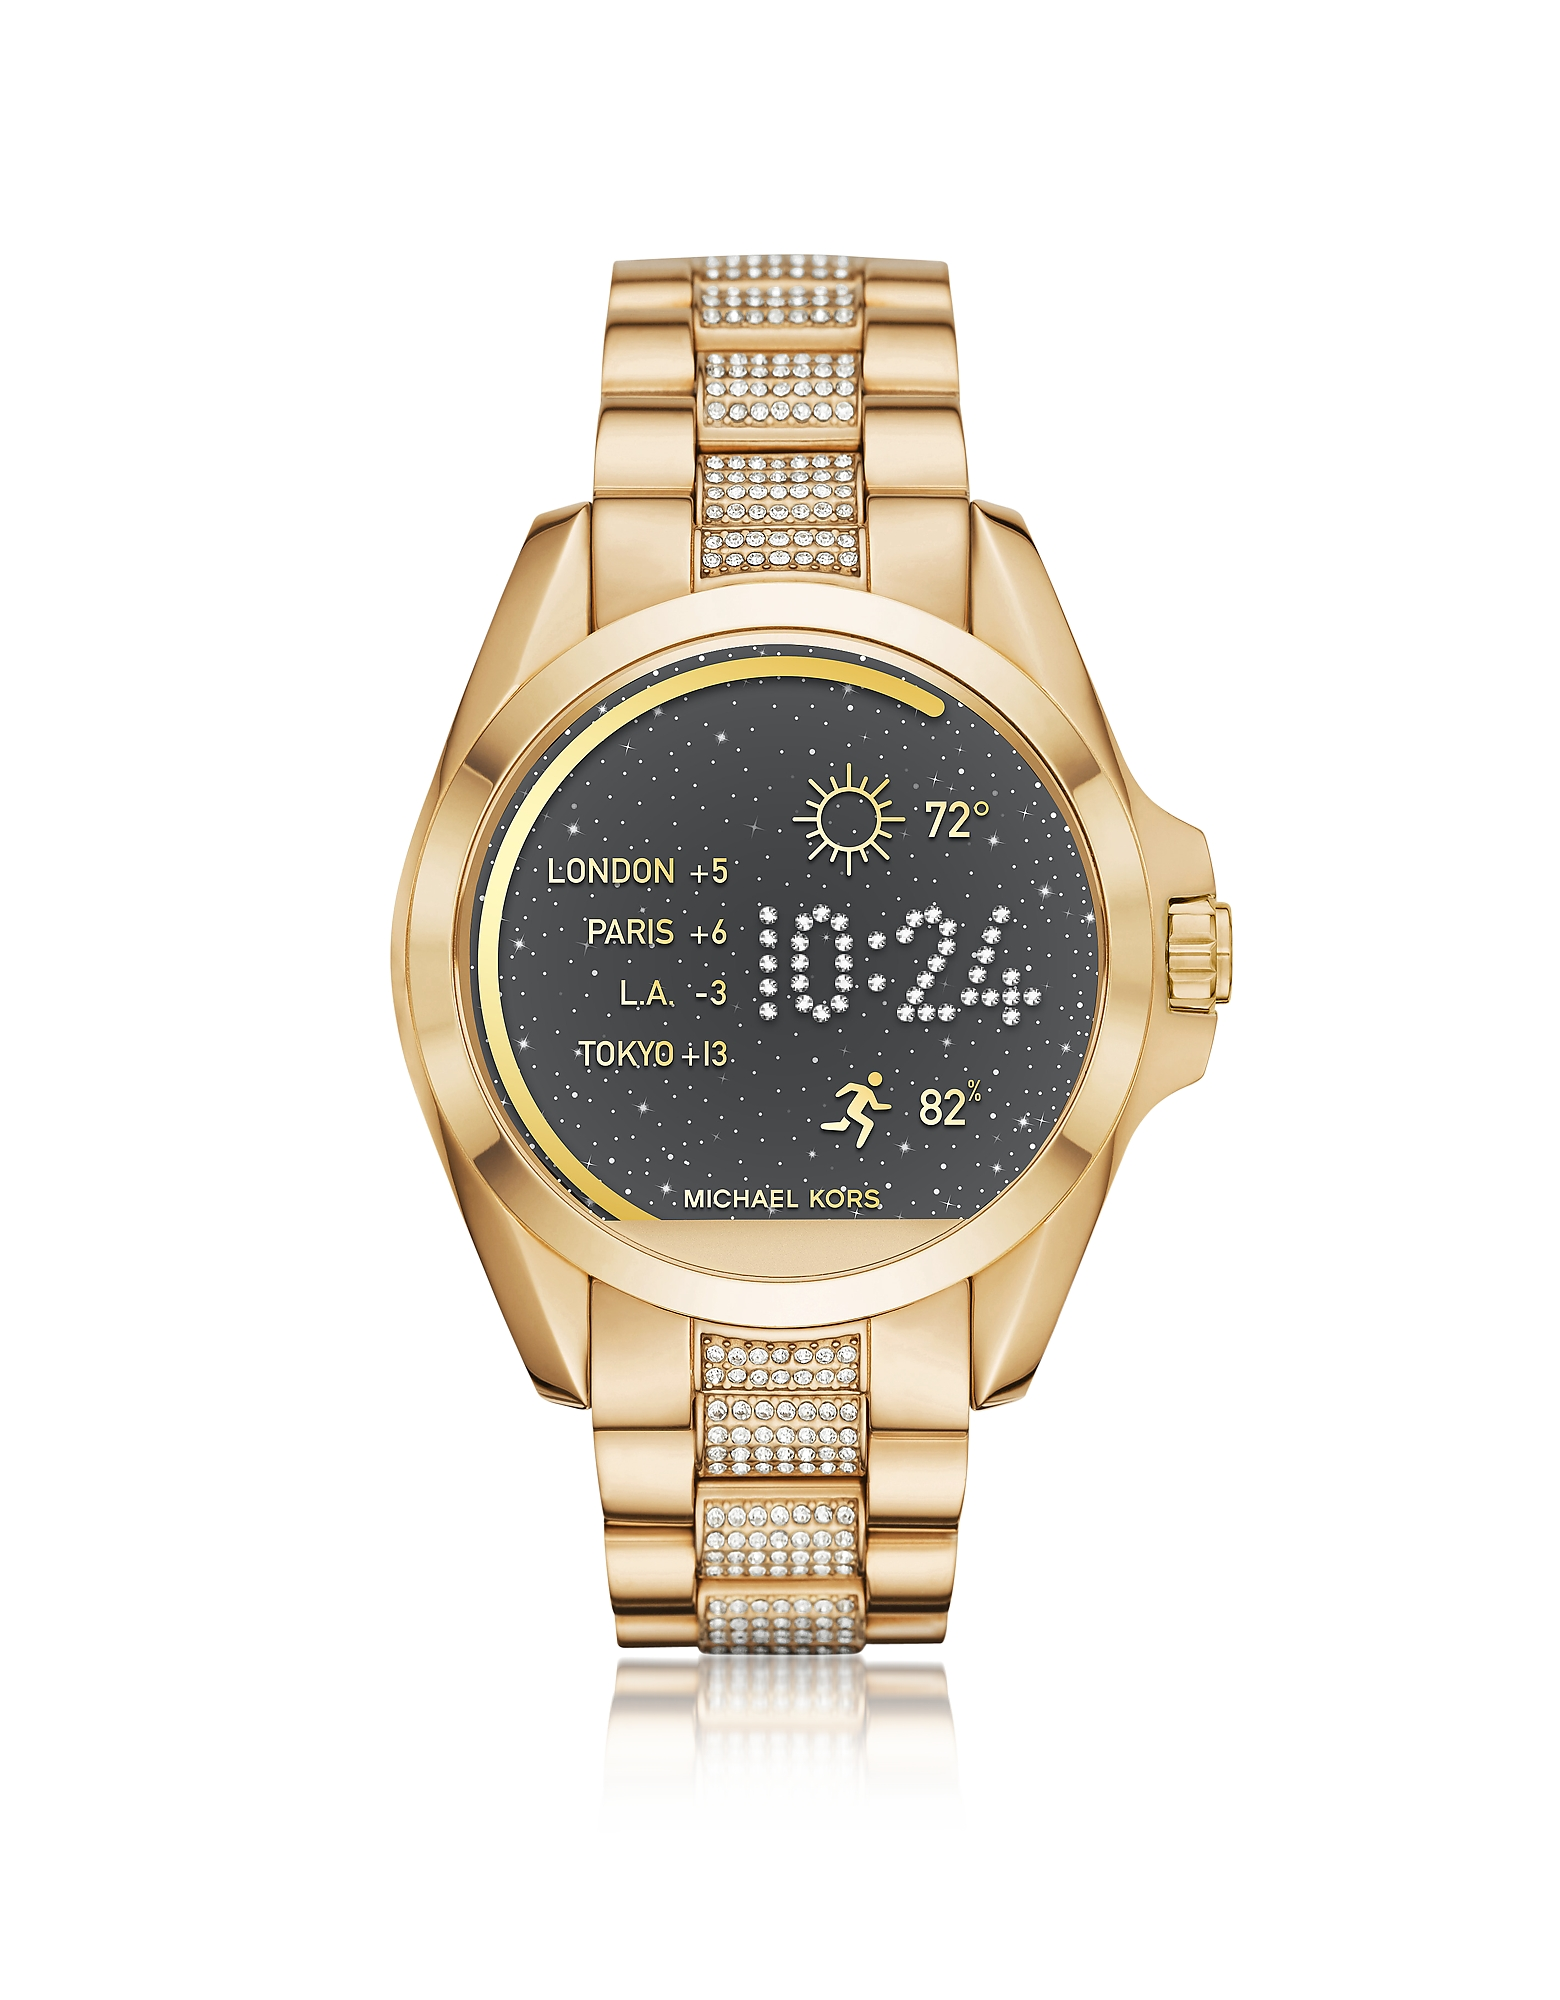 Michael Kors Women's Watches, Gold-tone PVD Stainless Steel Bradshaw Women's Smartwatch